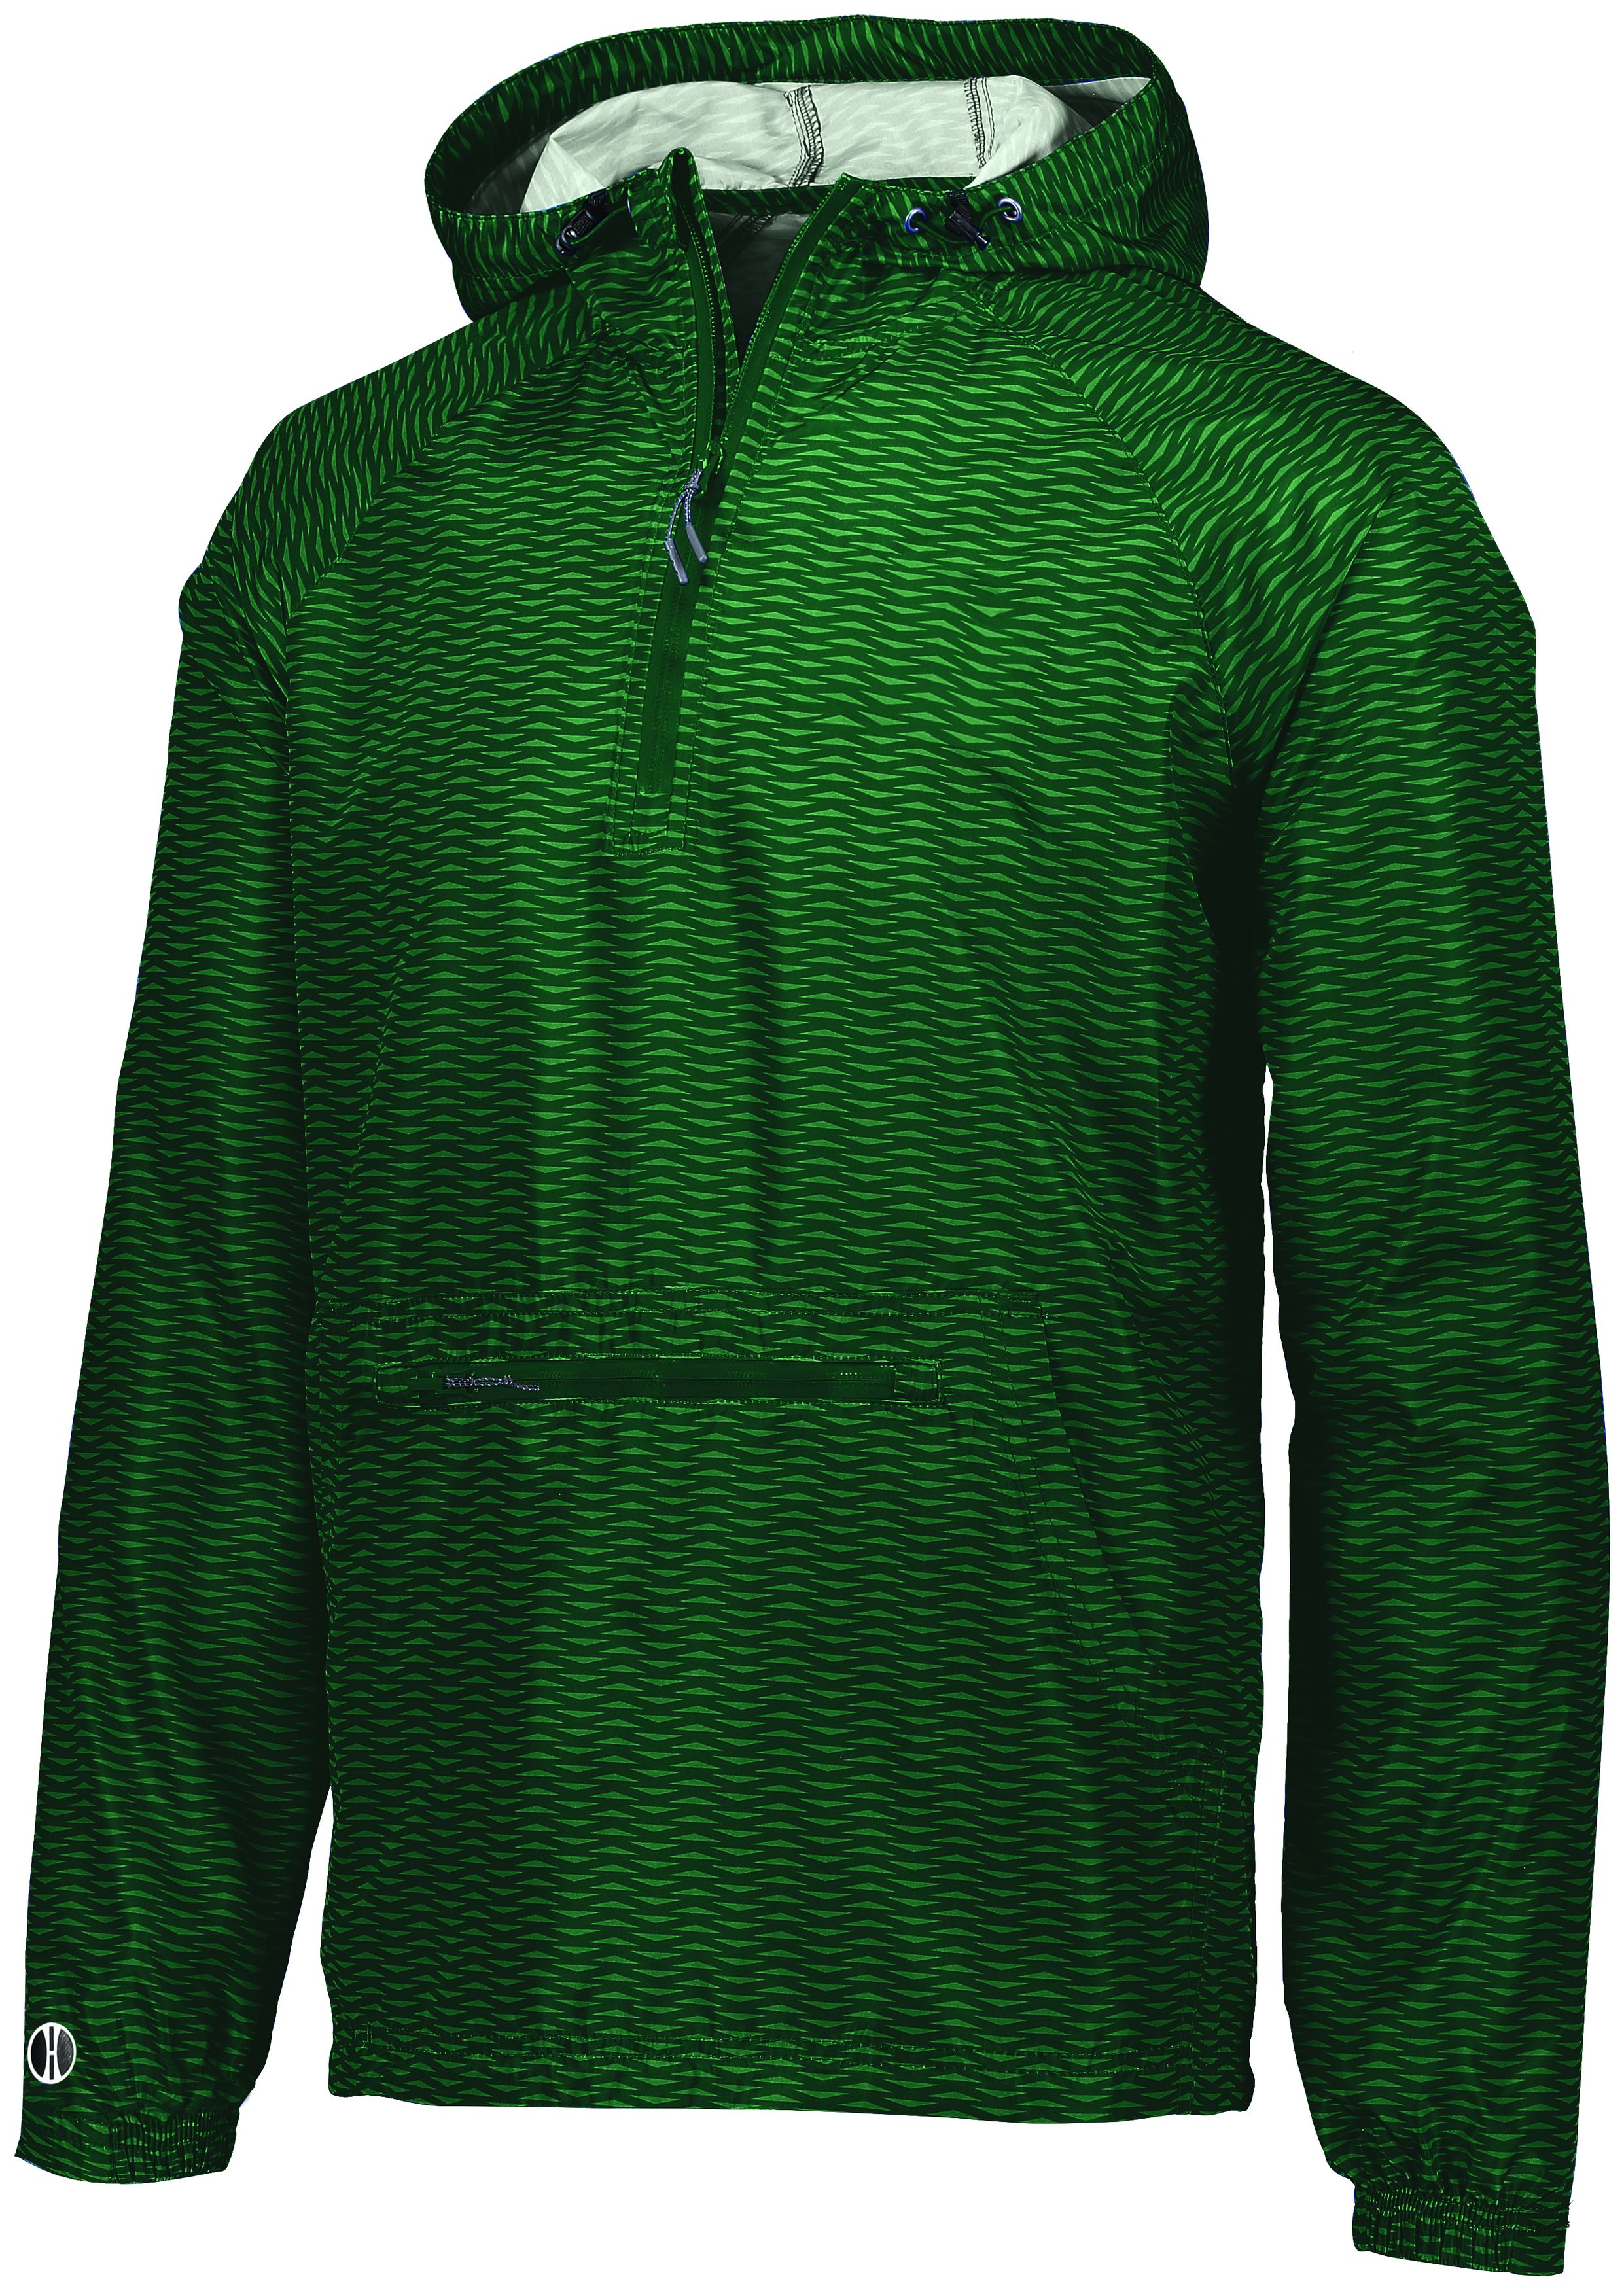 Range Packable Pullover - FOREST